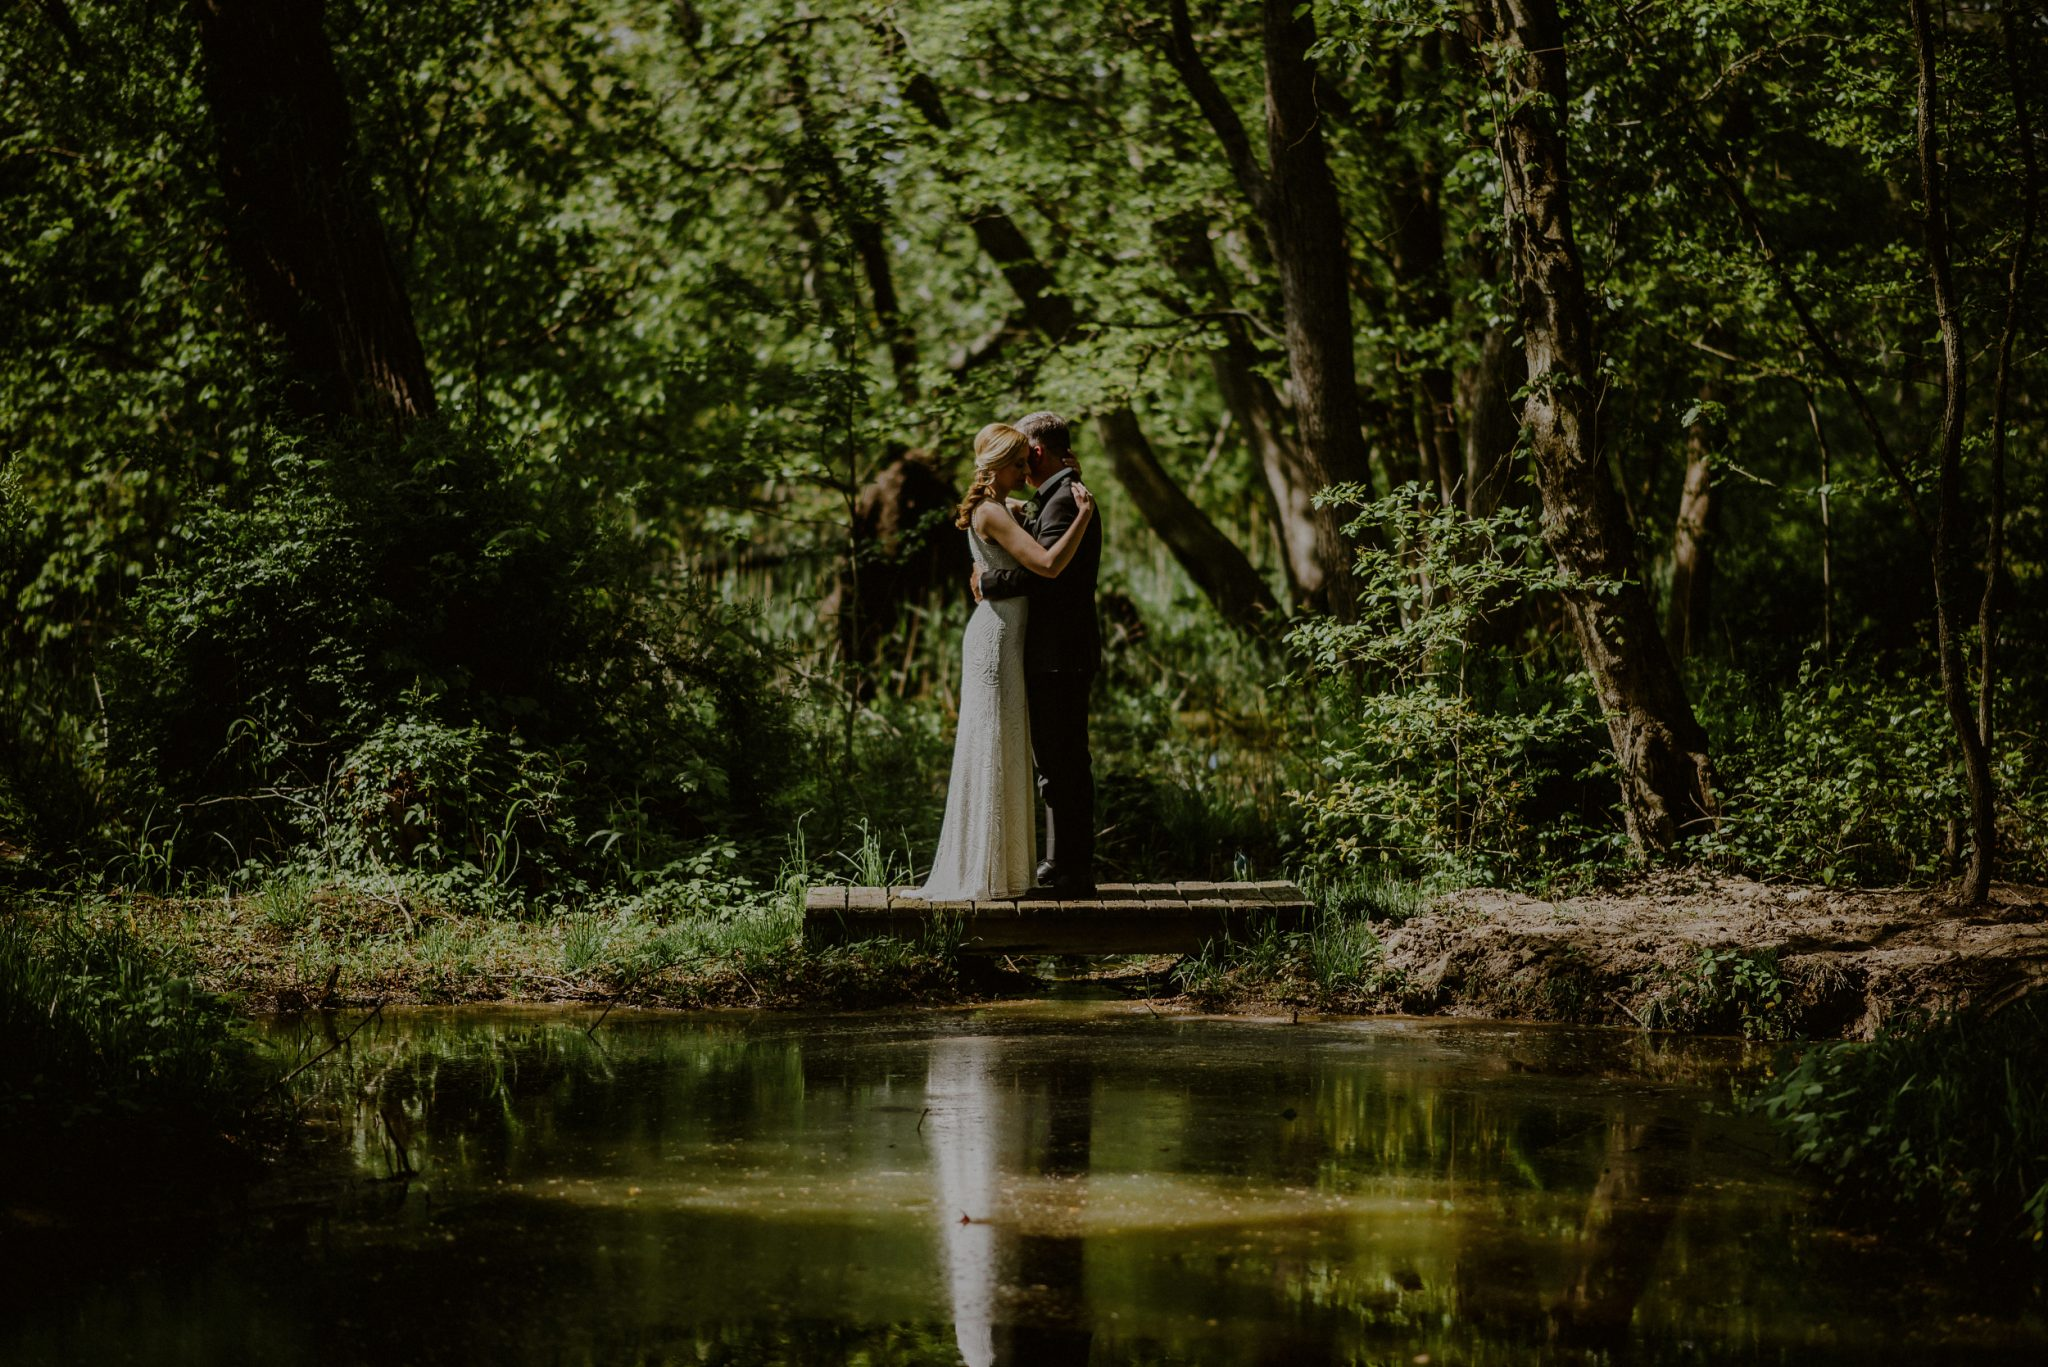 artistic wedding portrait of bride and groom with reflection